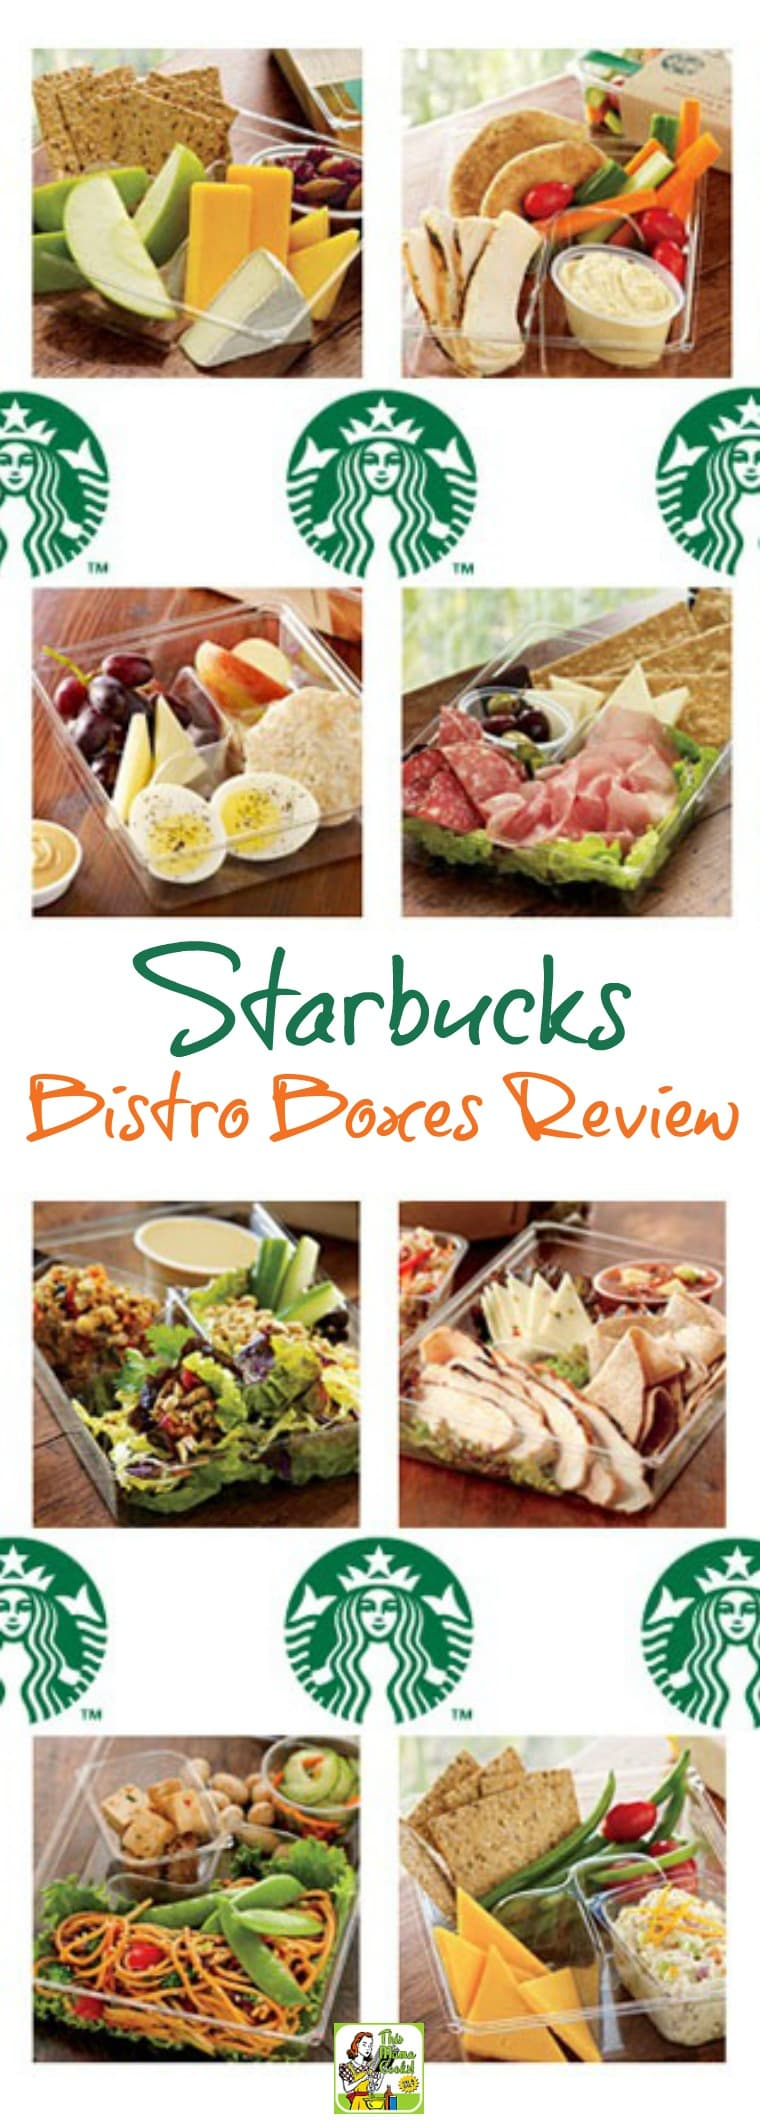 Starbucks Bistro Boxes Review. Includes a breakdown of Starbucks bistro box nutrition. #starbucks #reviews #lunch